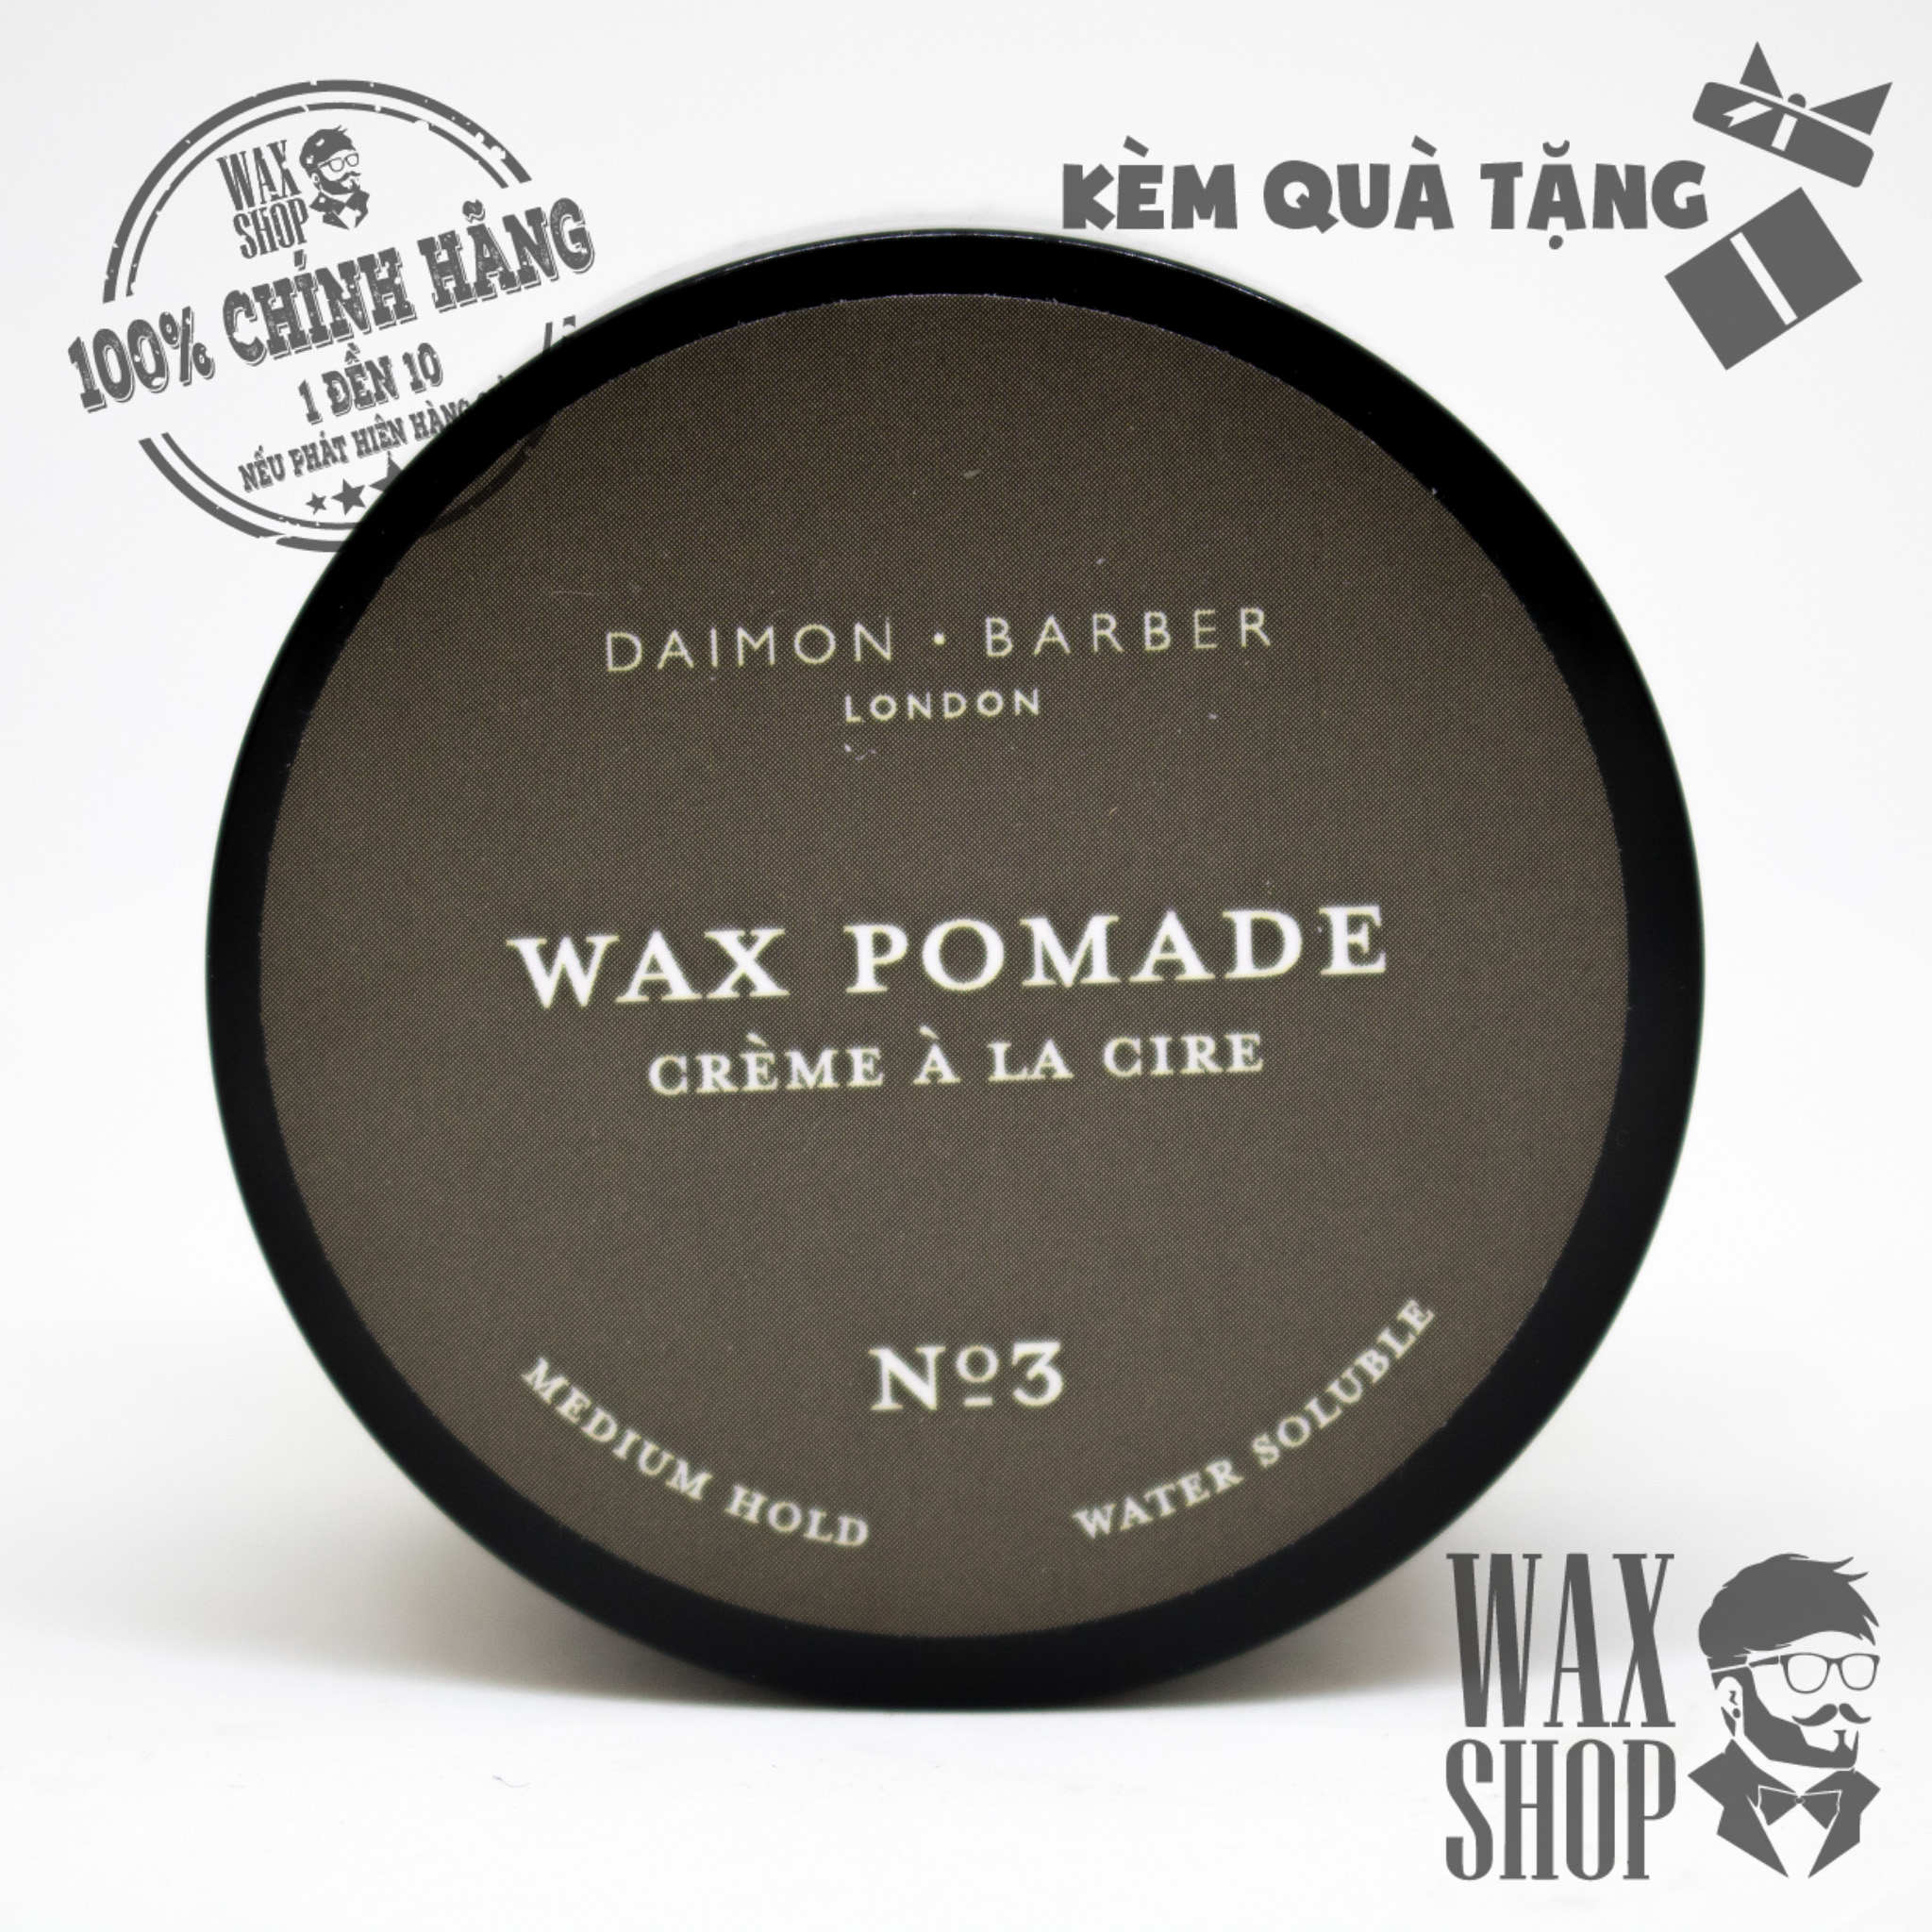 Wax Pomade - Daimon Barber